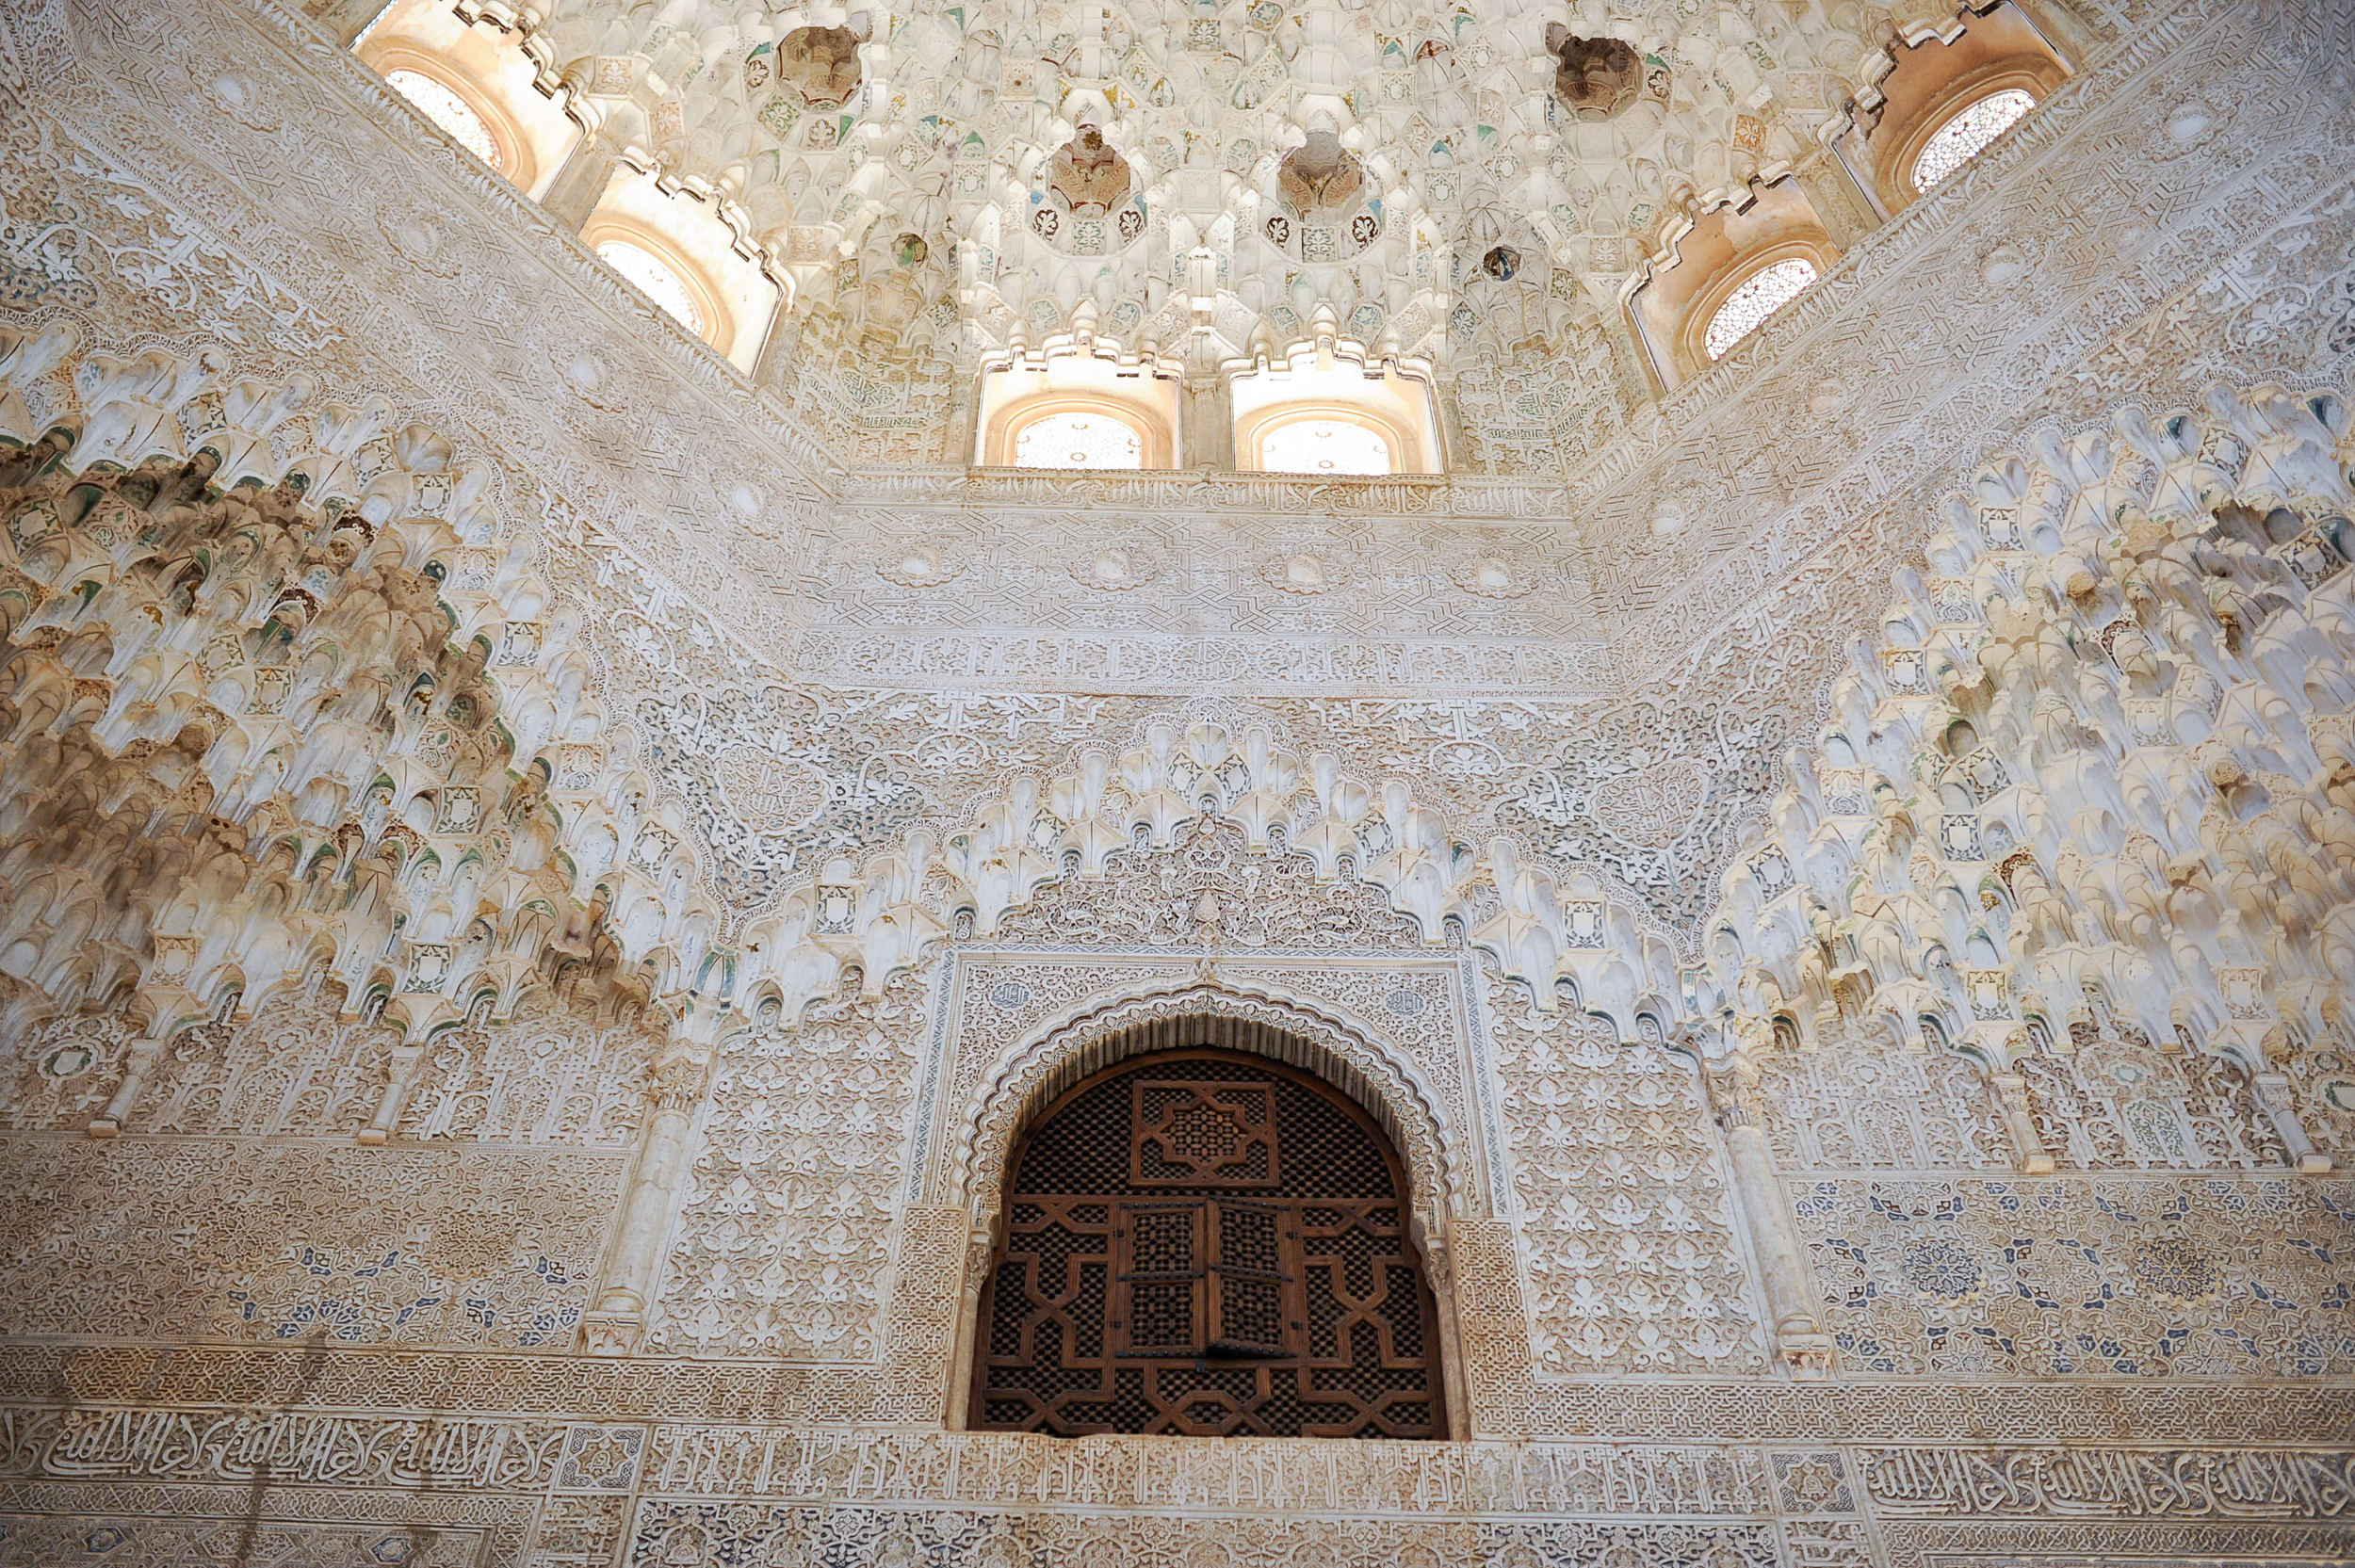 The Alhambra was mostly used as a summer residence - so all the airy columns and windows let in lots of breeze and light. Honeycomb muqarnas are a unique feature.